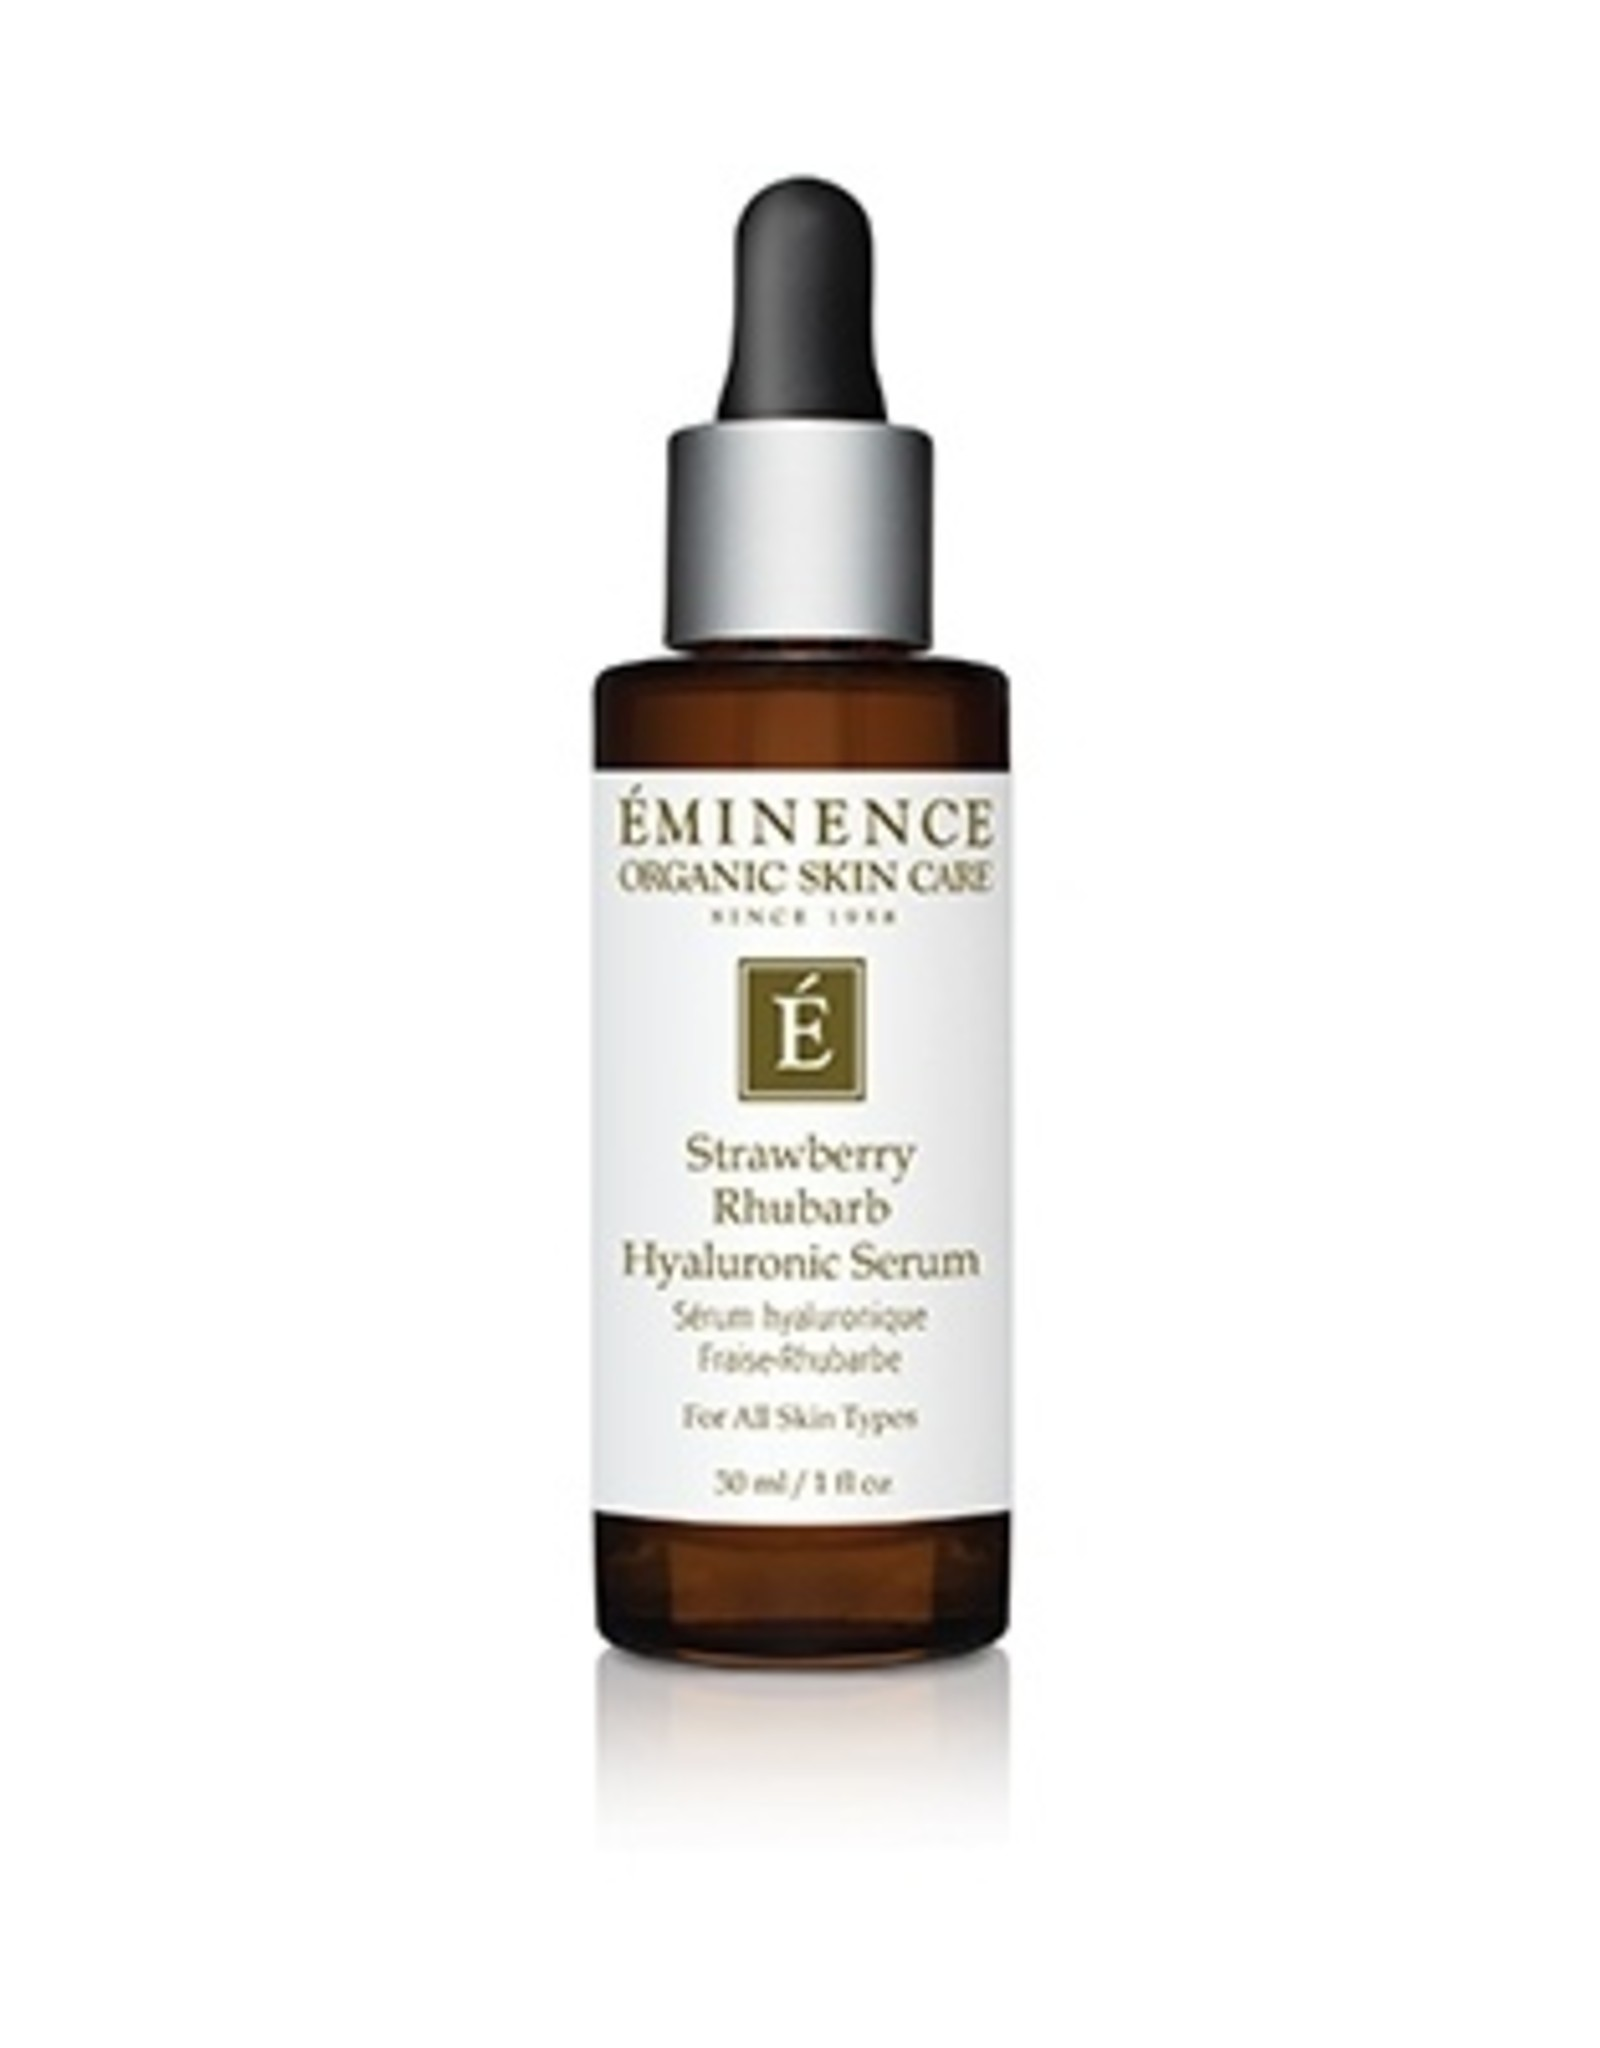 Eminence Organic Skin Care Strawberry Rhubarb Hyaluronic Serum